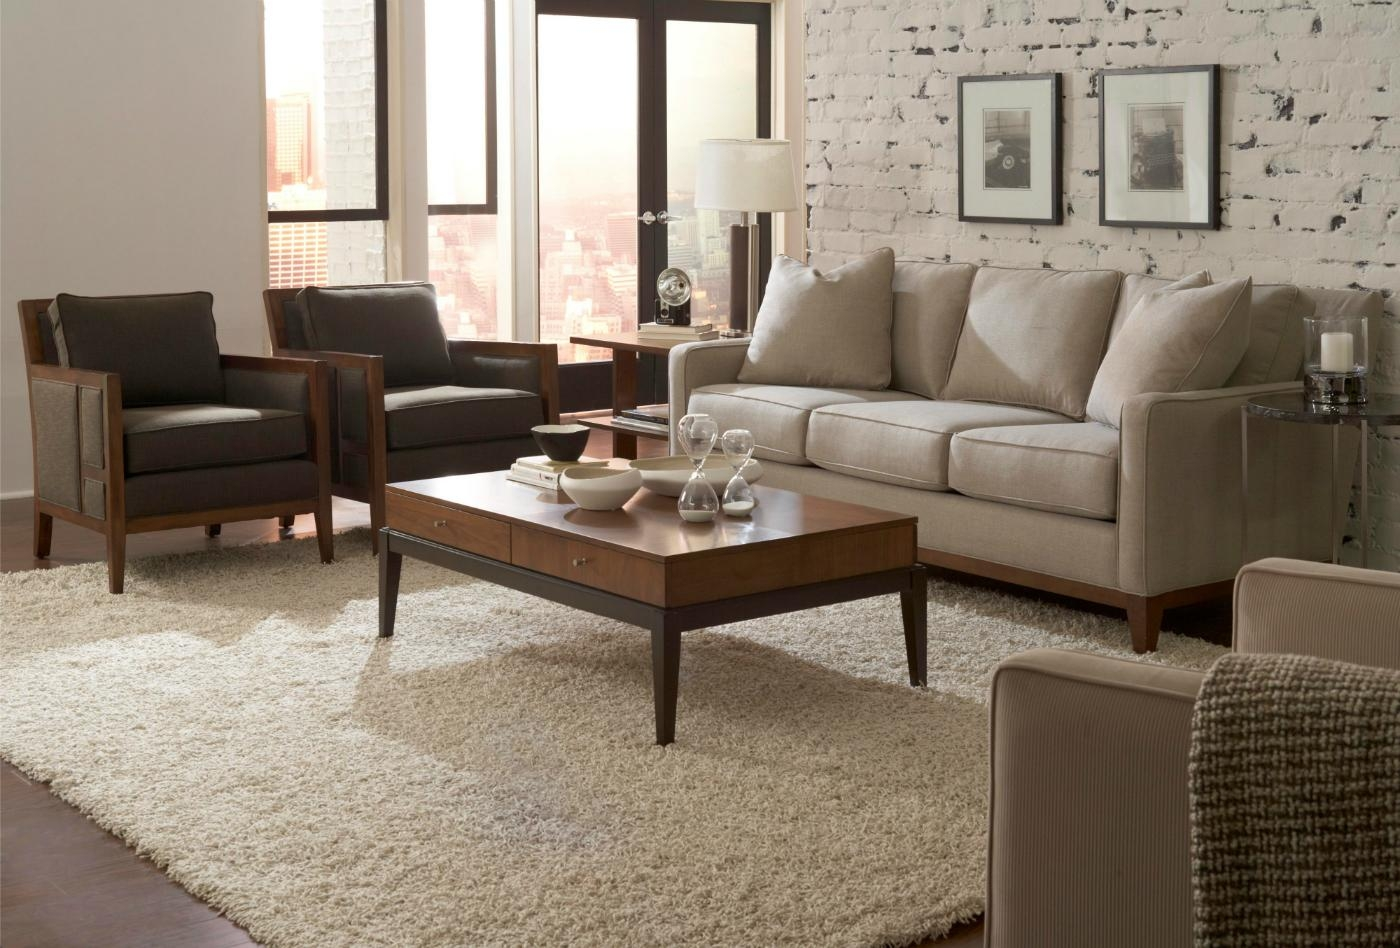 Quinn Living Room Sofa And Chairs - Chambers Furniture with Living Room Sofas and Chairs